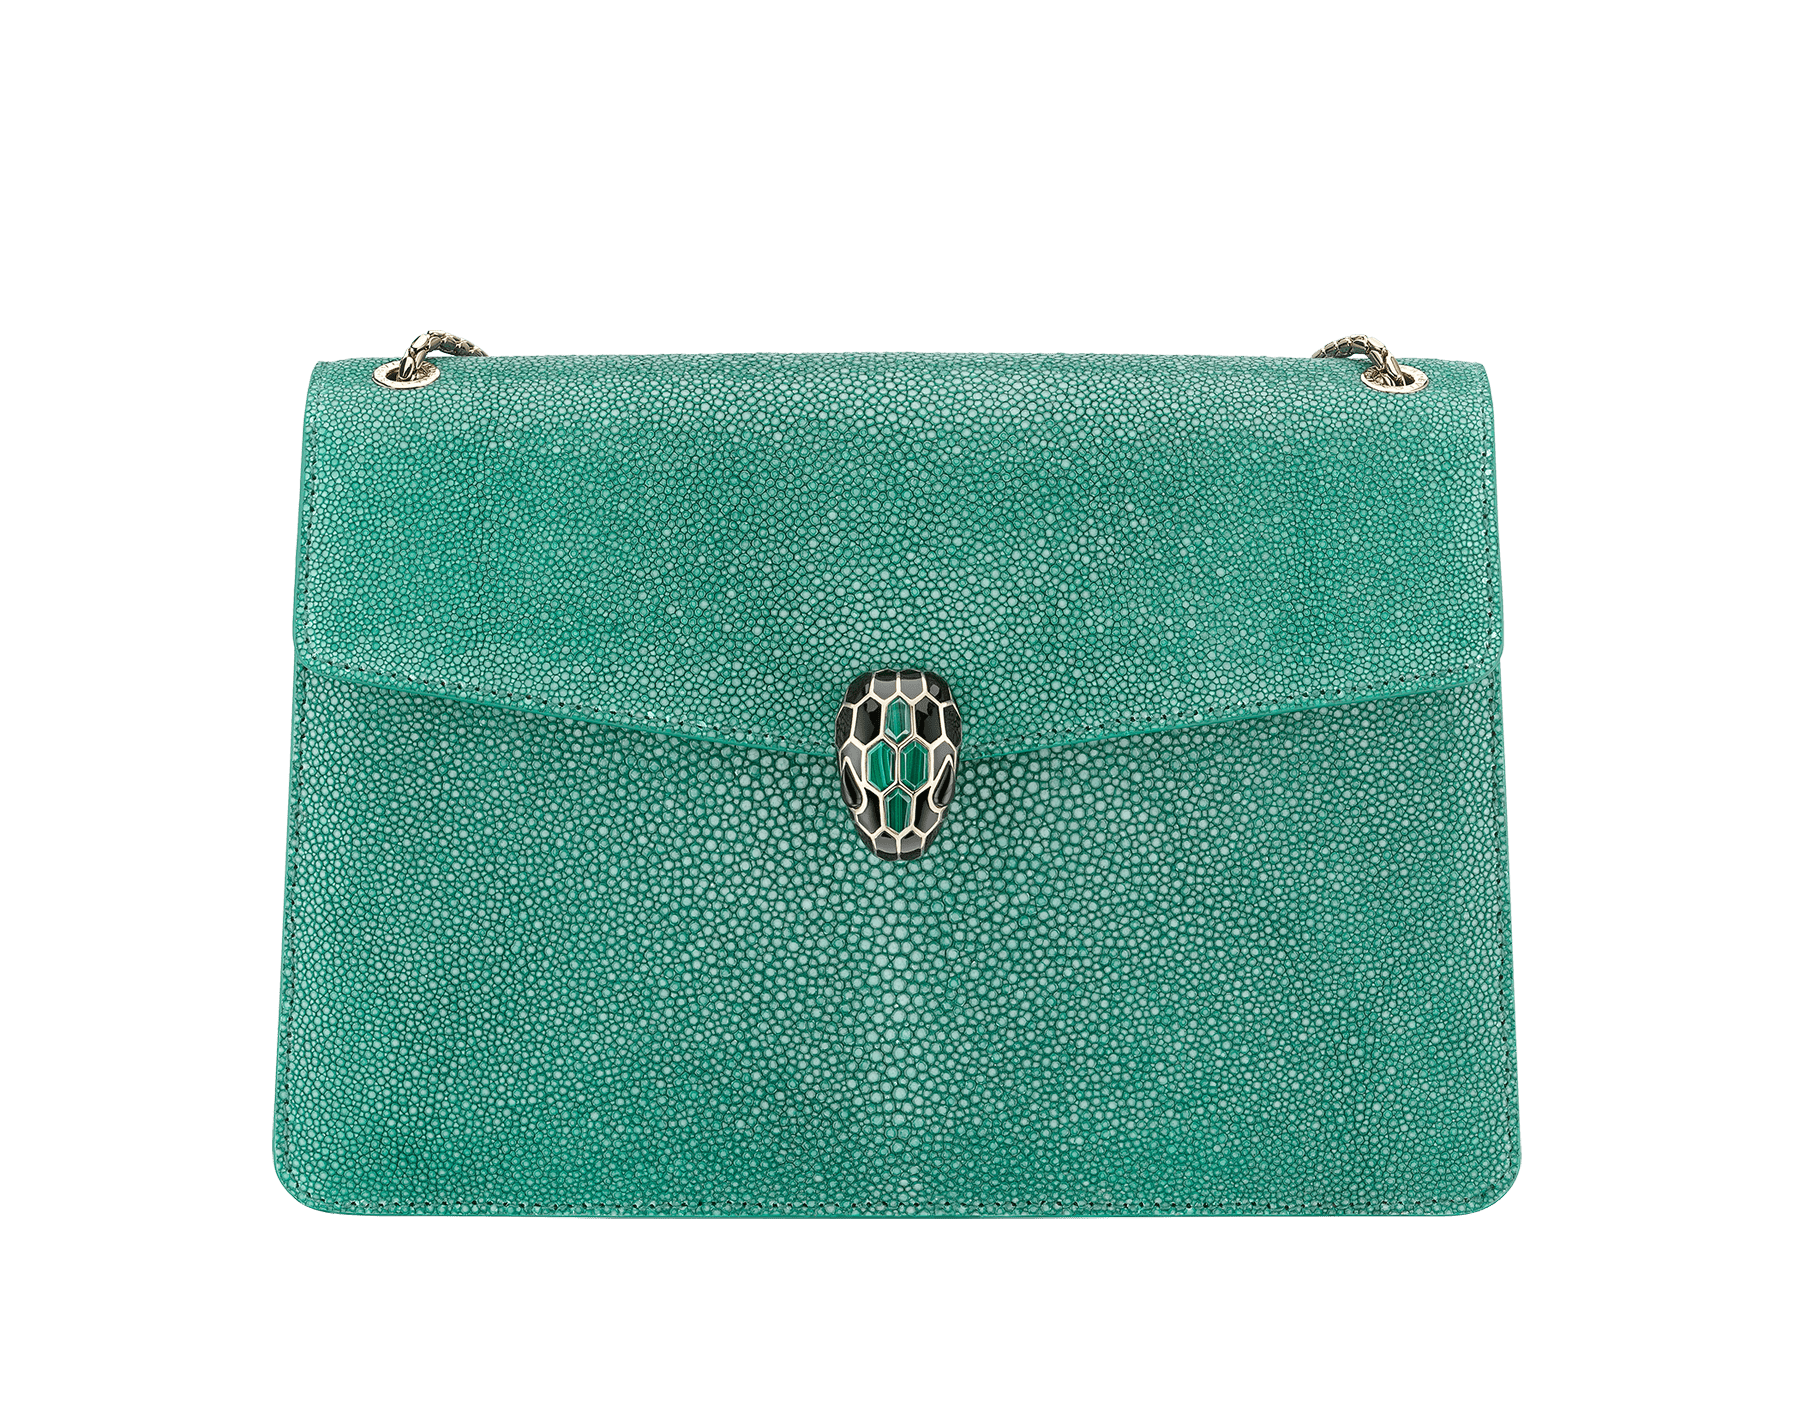 """Serpenti Forever"" shoulder bag in emerald green galuchat skin. Iconic snake head closure in light gold plated brass enriched with black enamel, malachite scales and black onyx eyes. 289026 image 1"